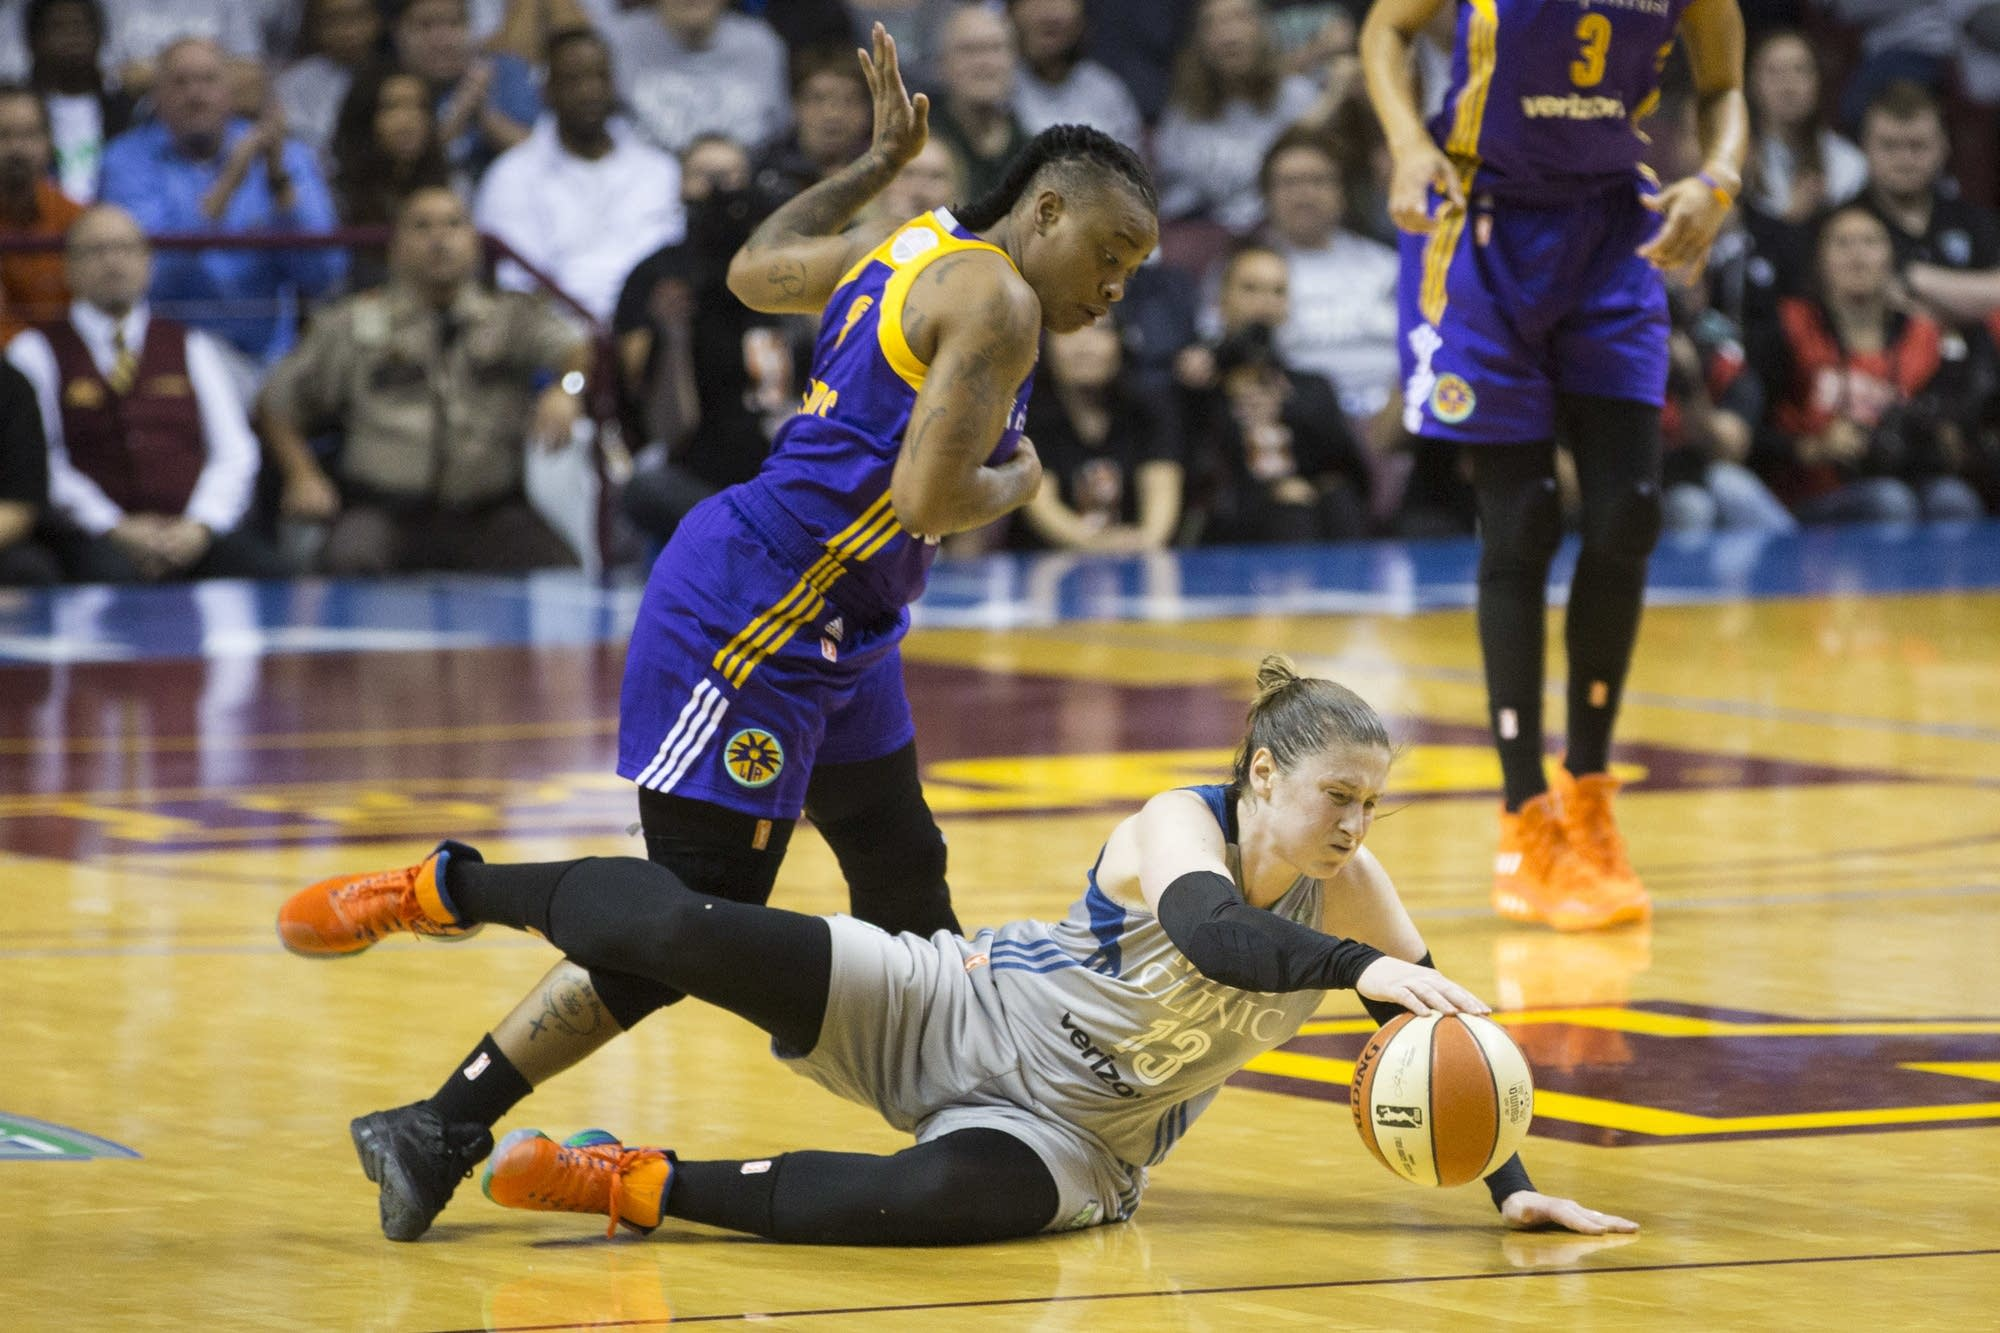 Lindsay Whalen lays out for a loose ball.